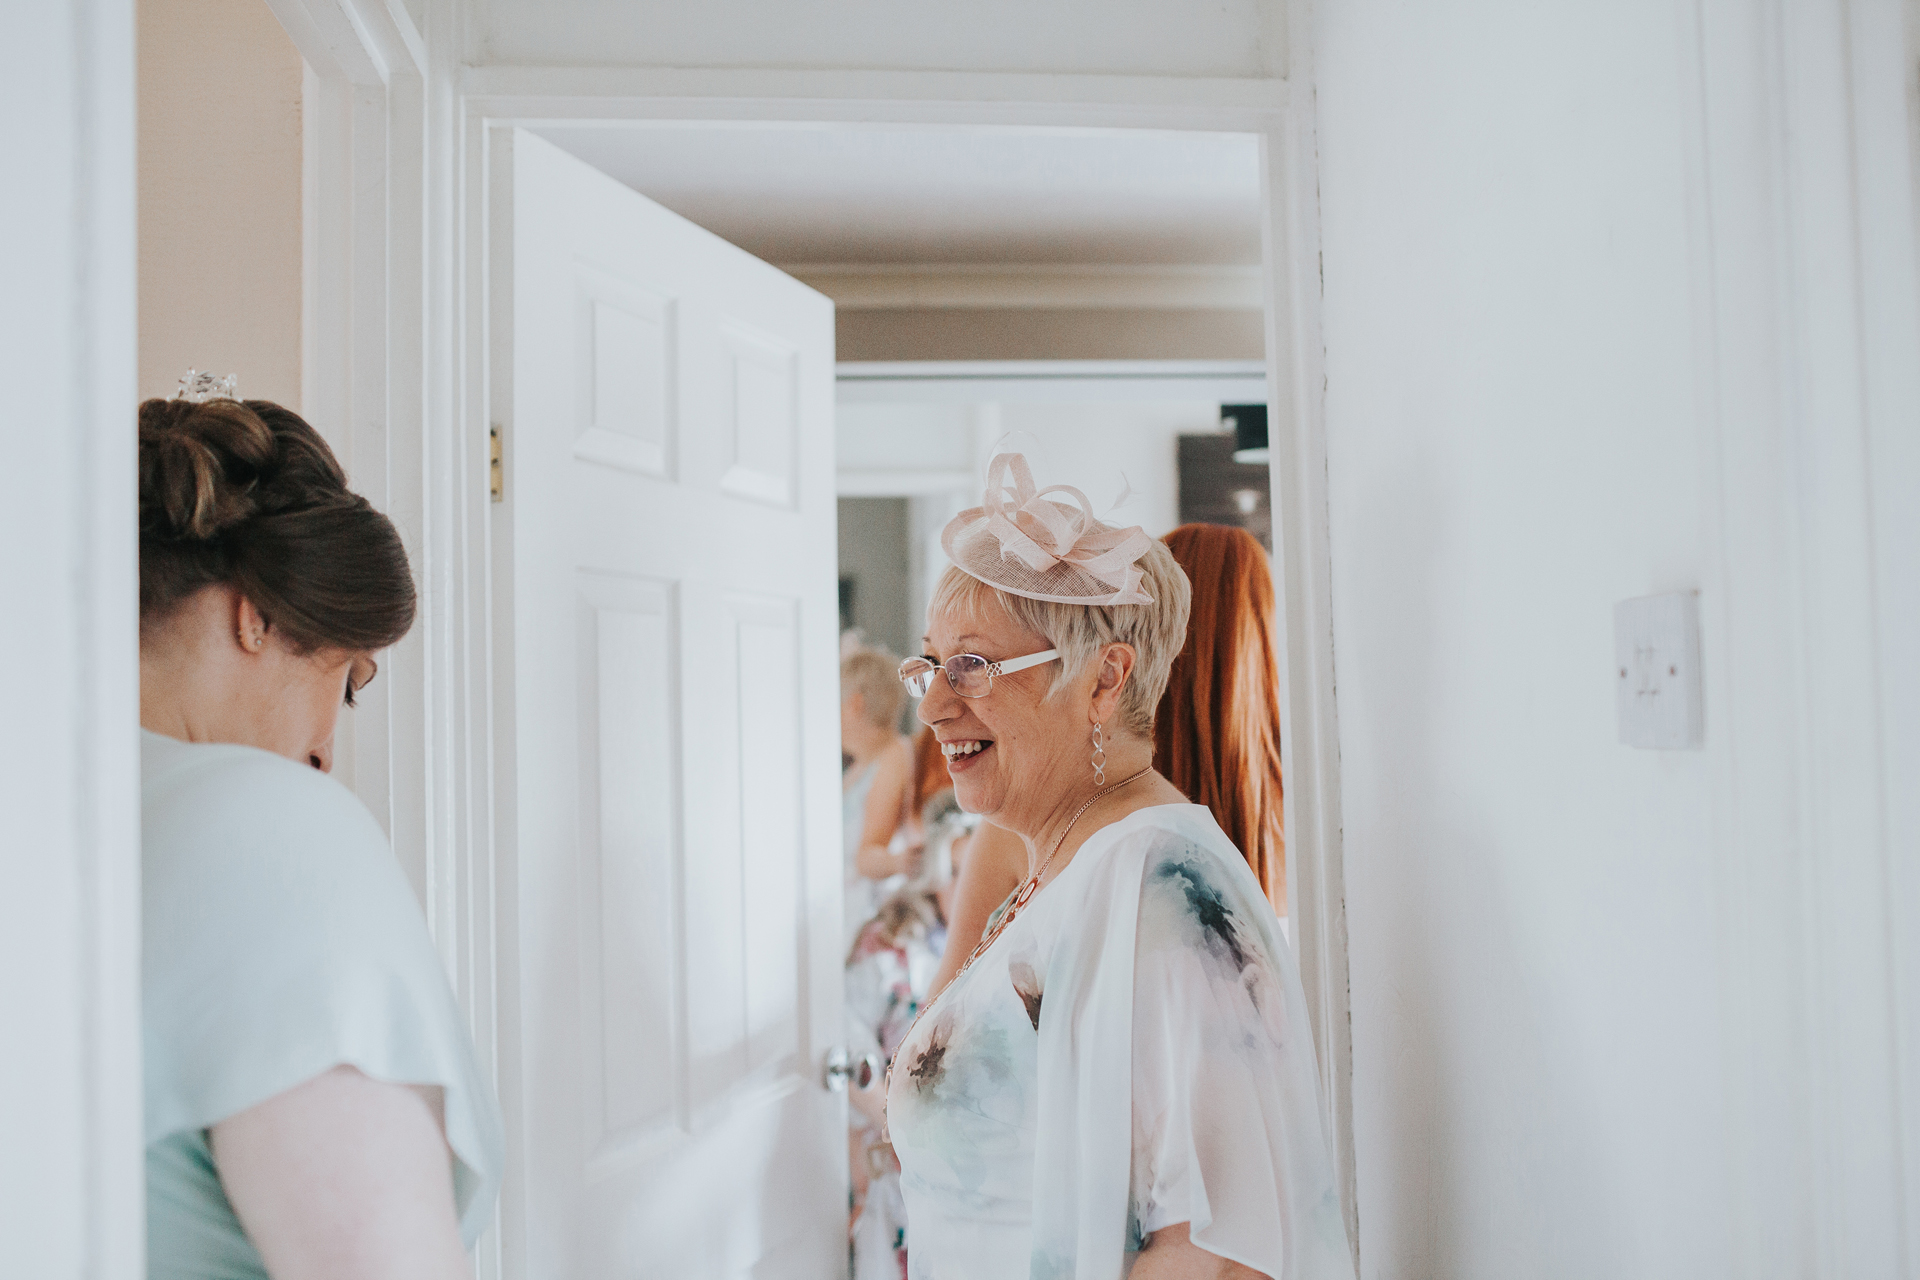 Mother of the bride looks excited waiting for her daughter in the hallway.